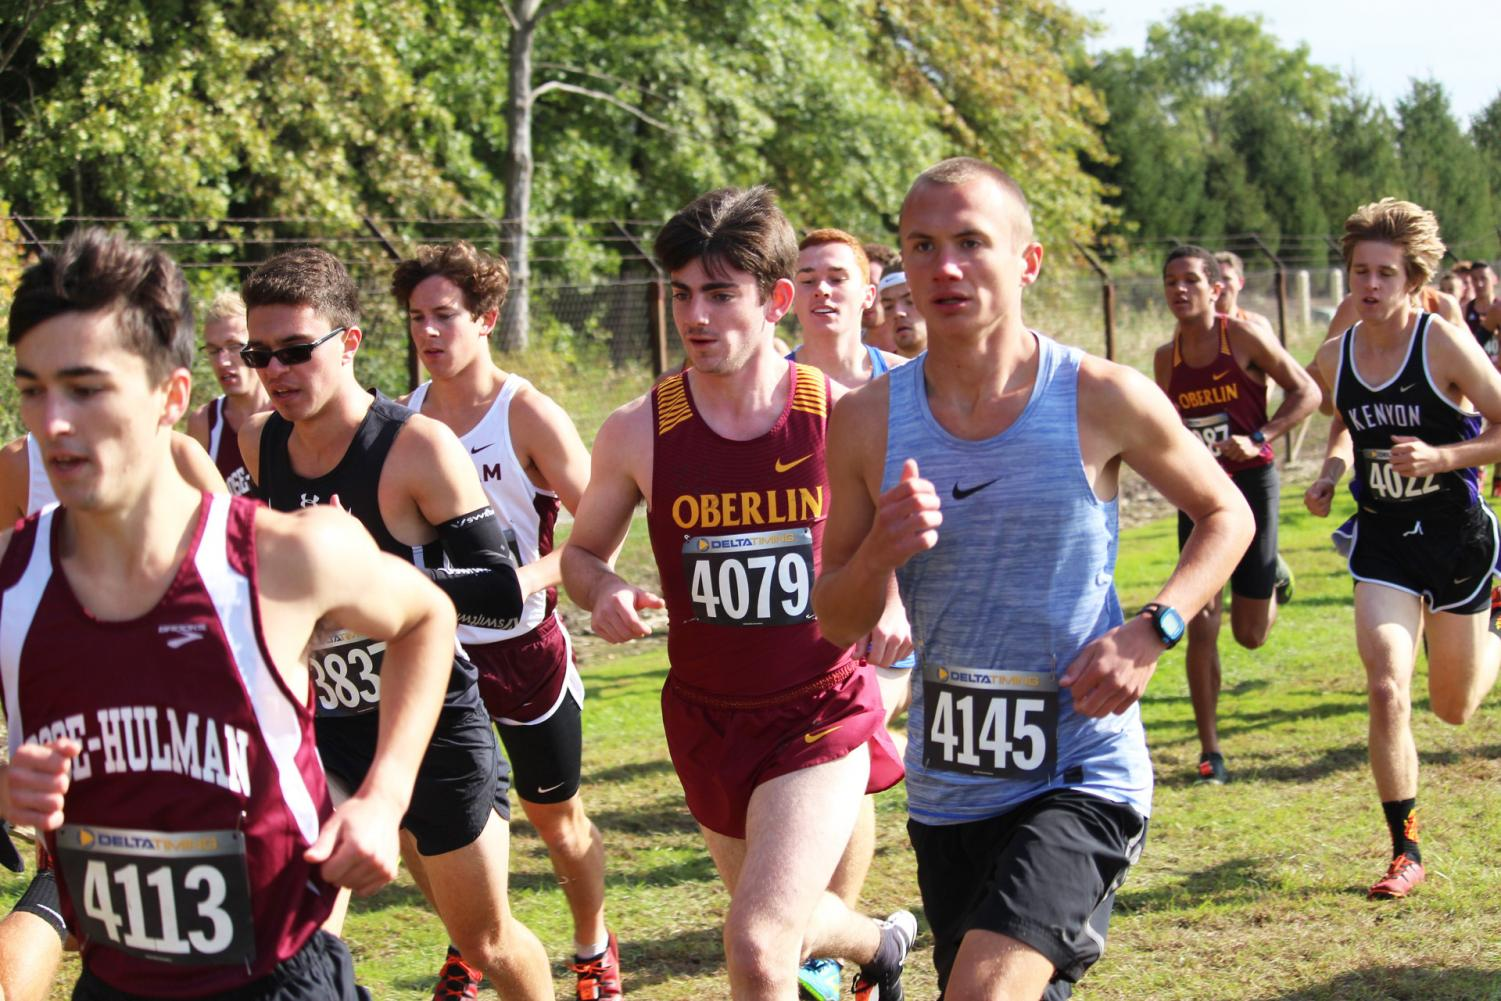 College first-year and cross country runner Avery Coreschi said his favorite part about running is the feeling of freedom he gets, as well as the opportunity to take in his surroundings in a unique way.